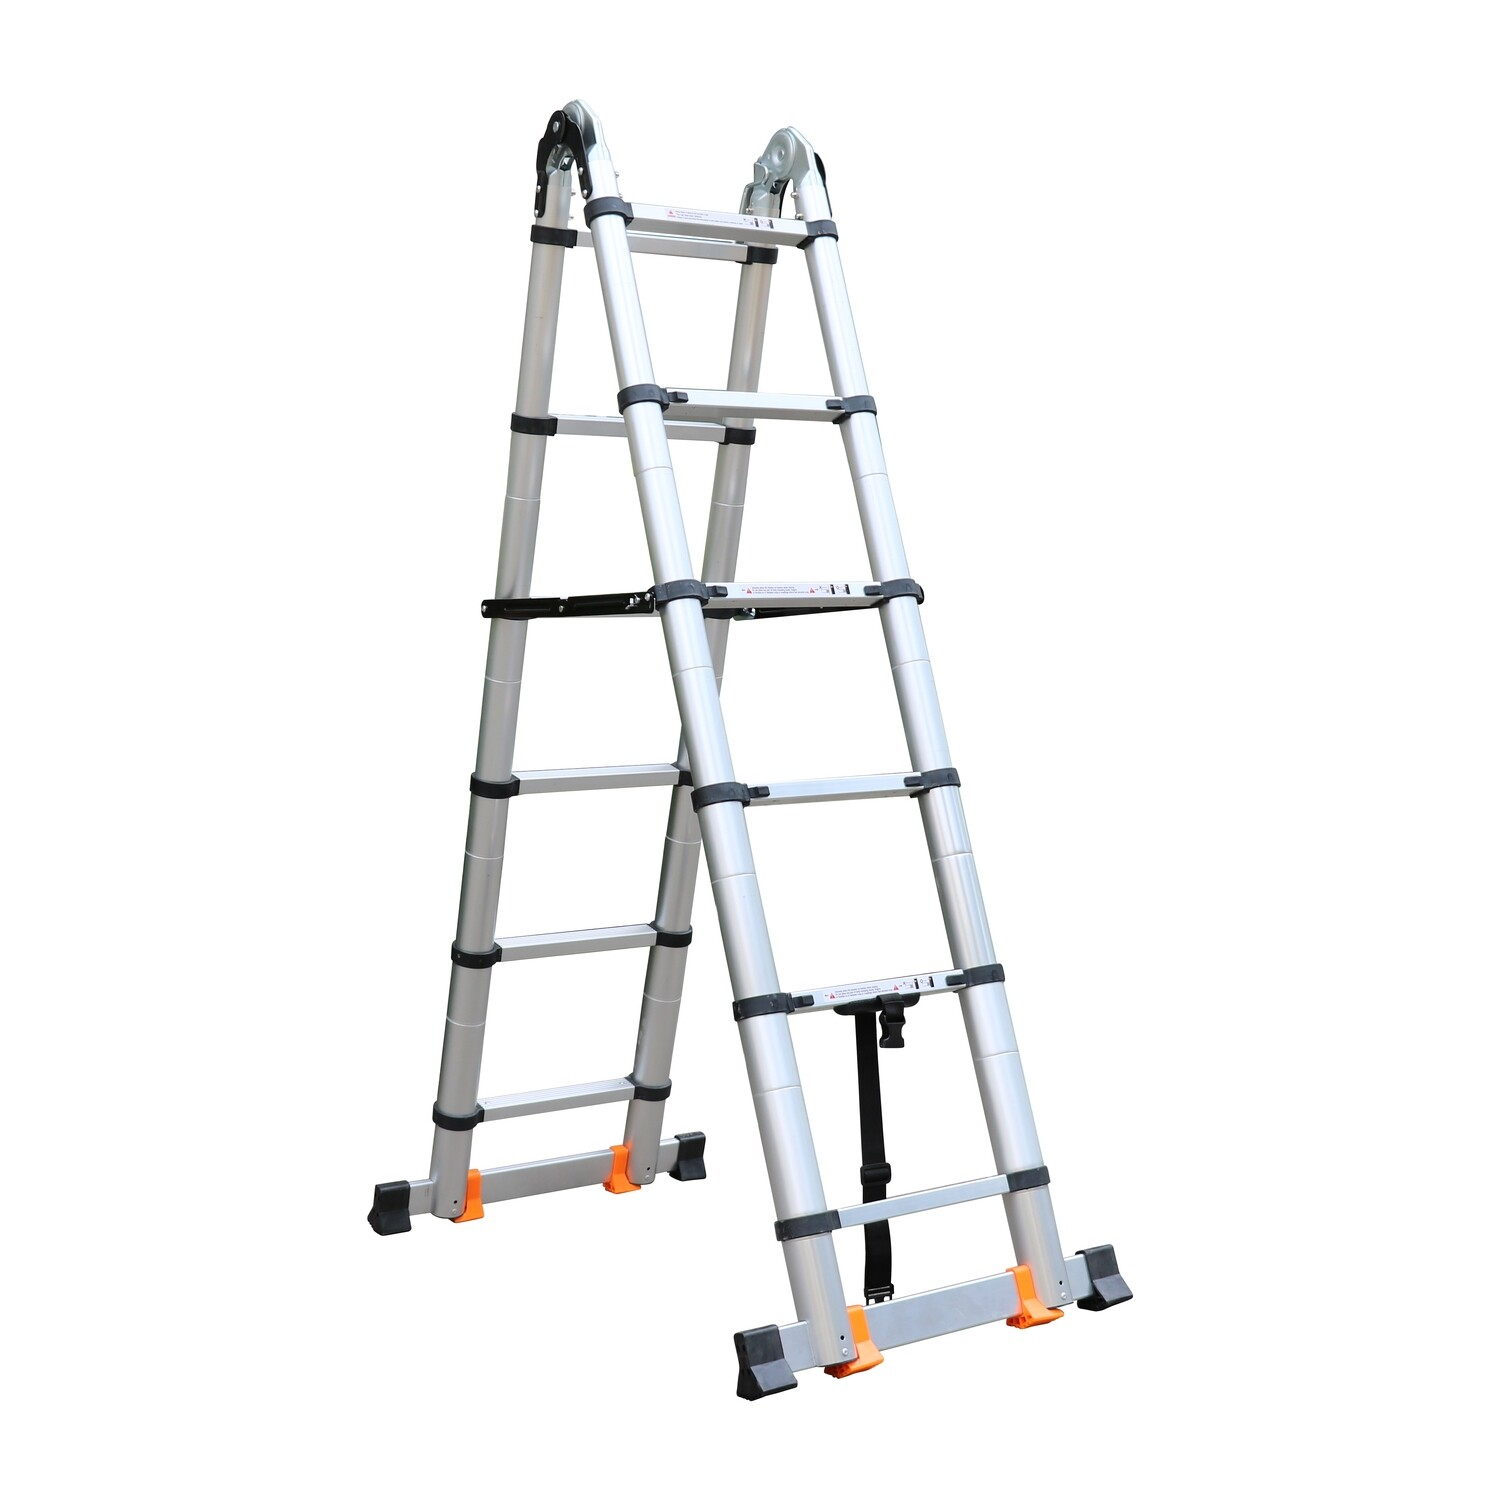 3.8m A-frame Hinged Folding Portable telescopic ladder